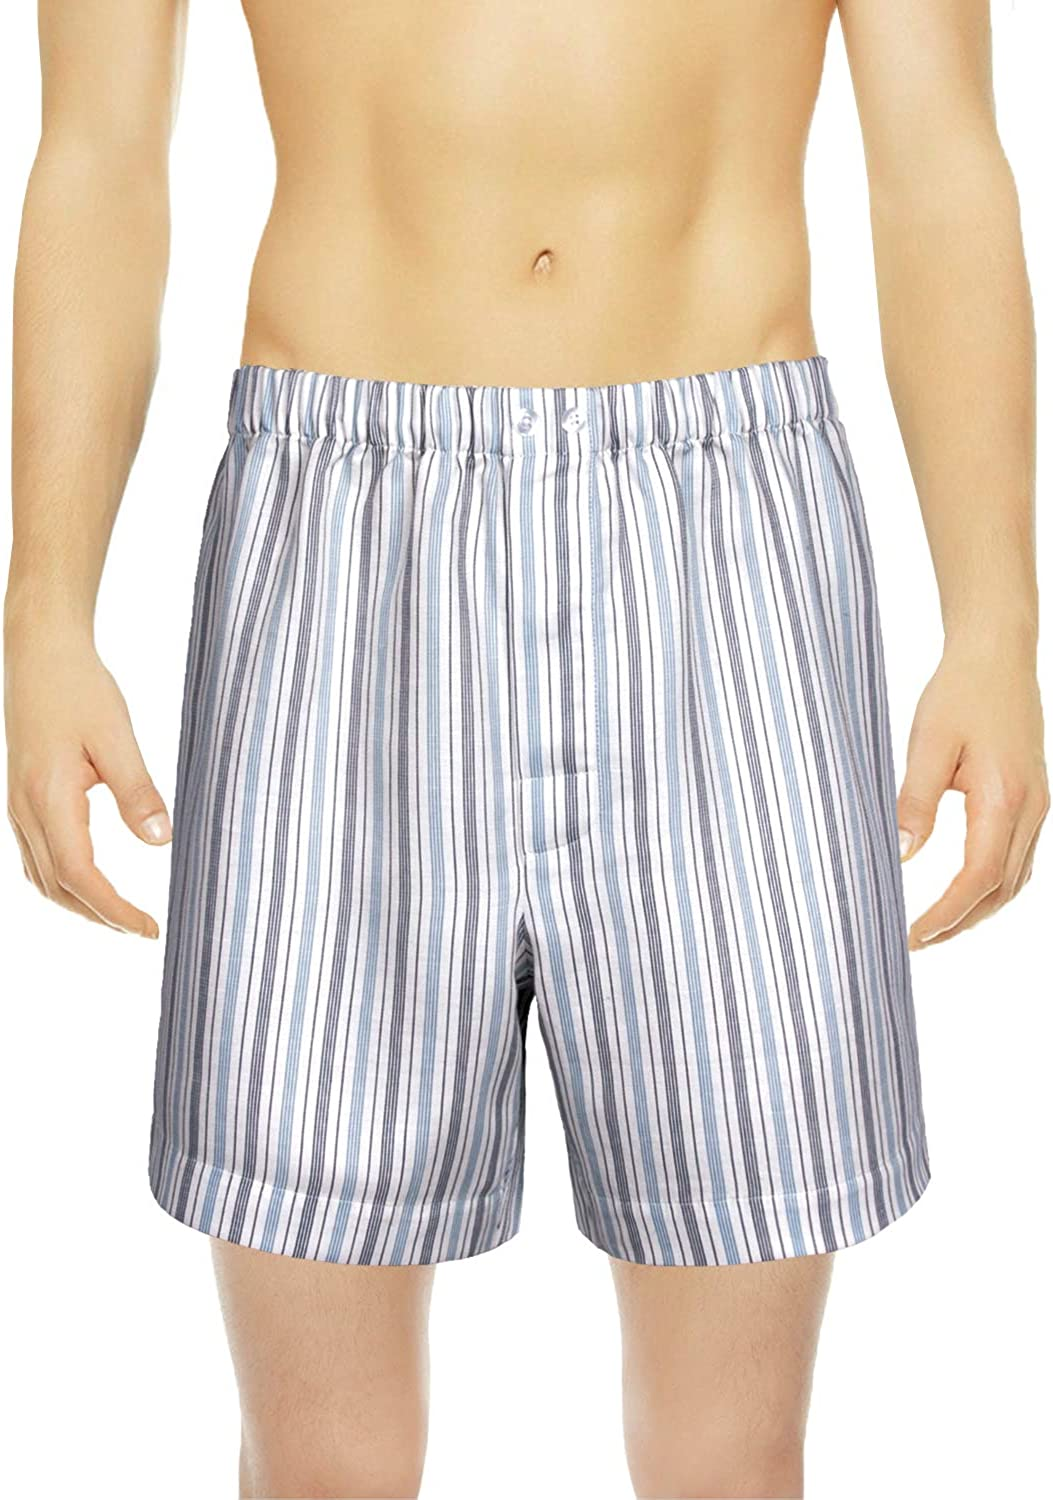 Men's Fine-Stripe Boxer Shorts - Crafted in Europe